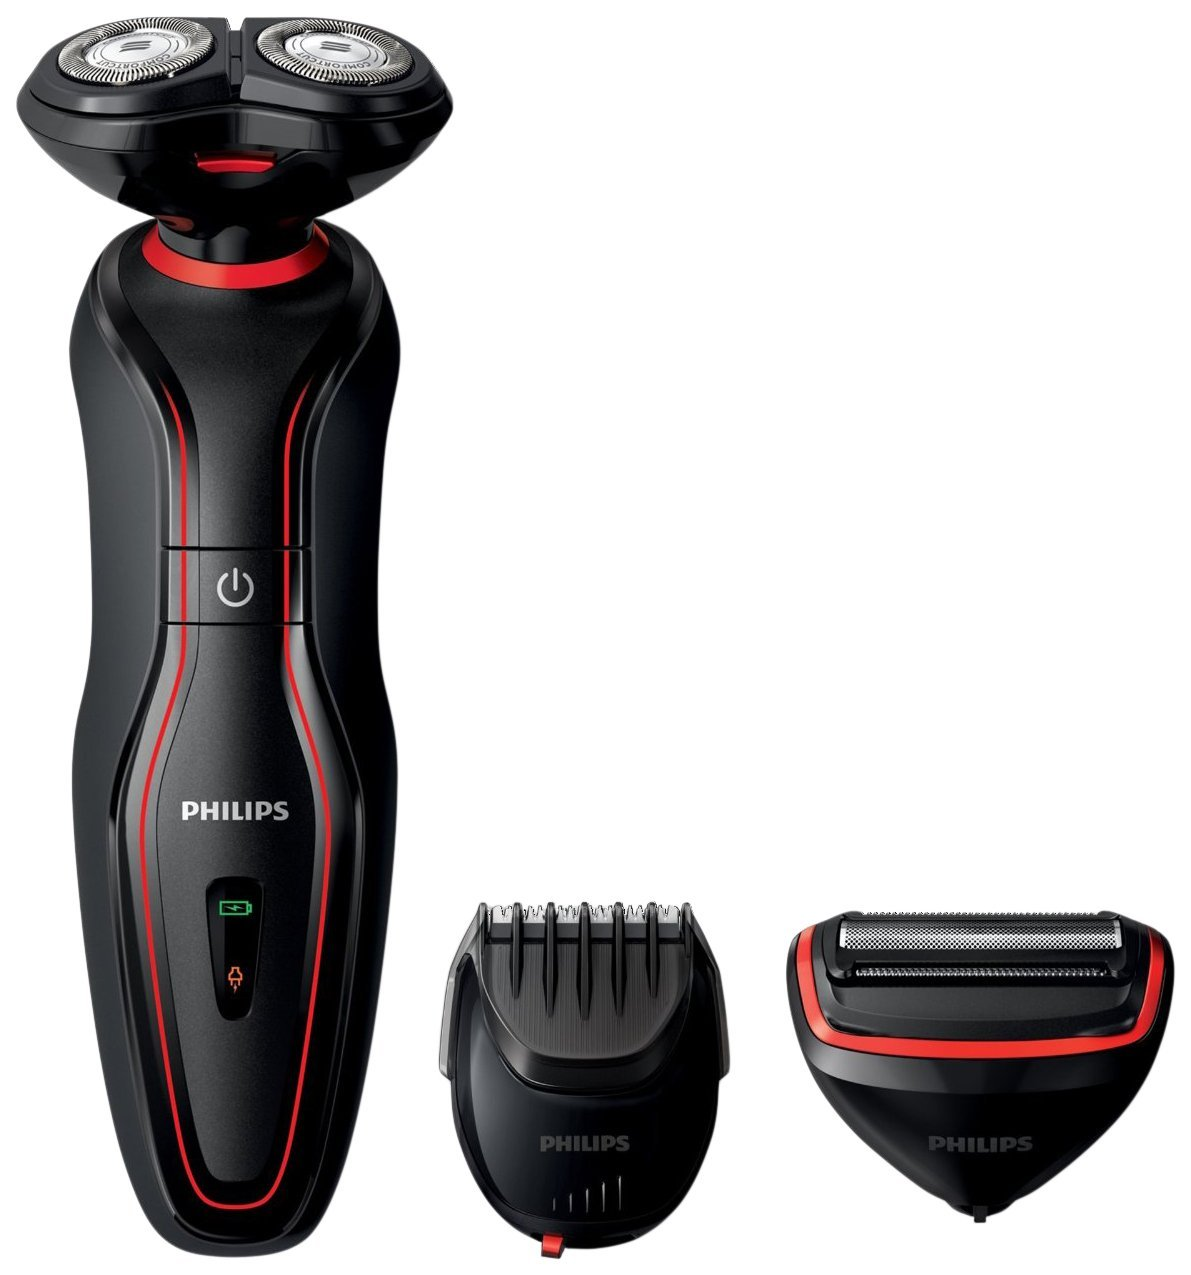 Philips S738/20 Click&Style